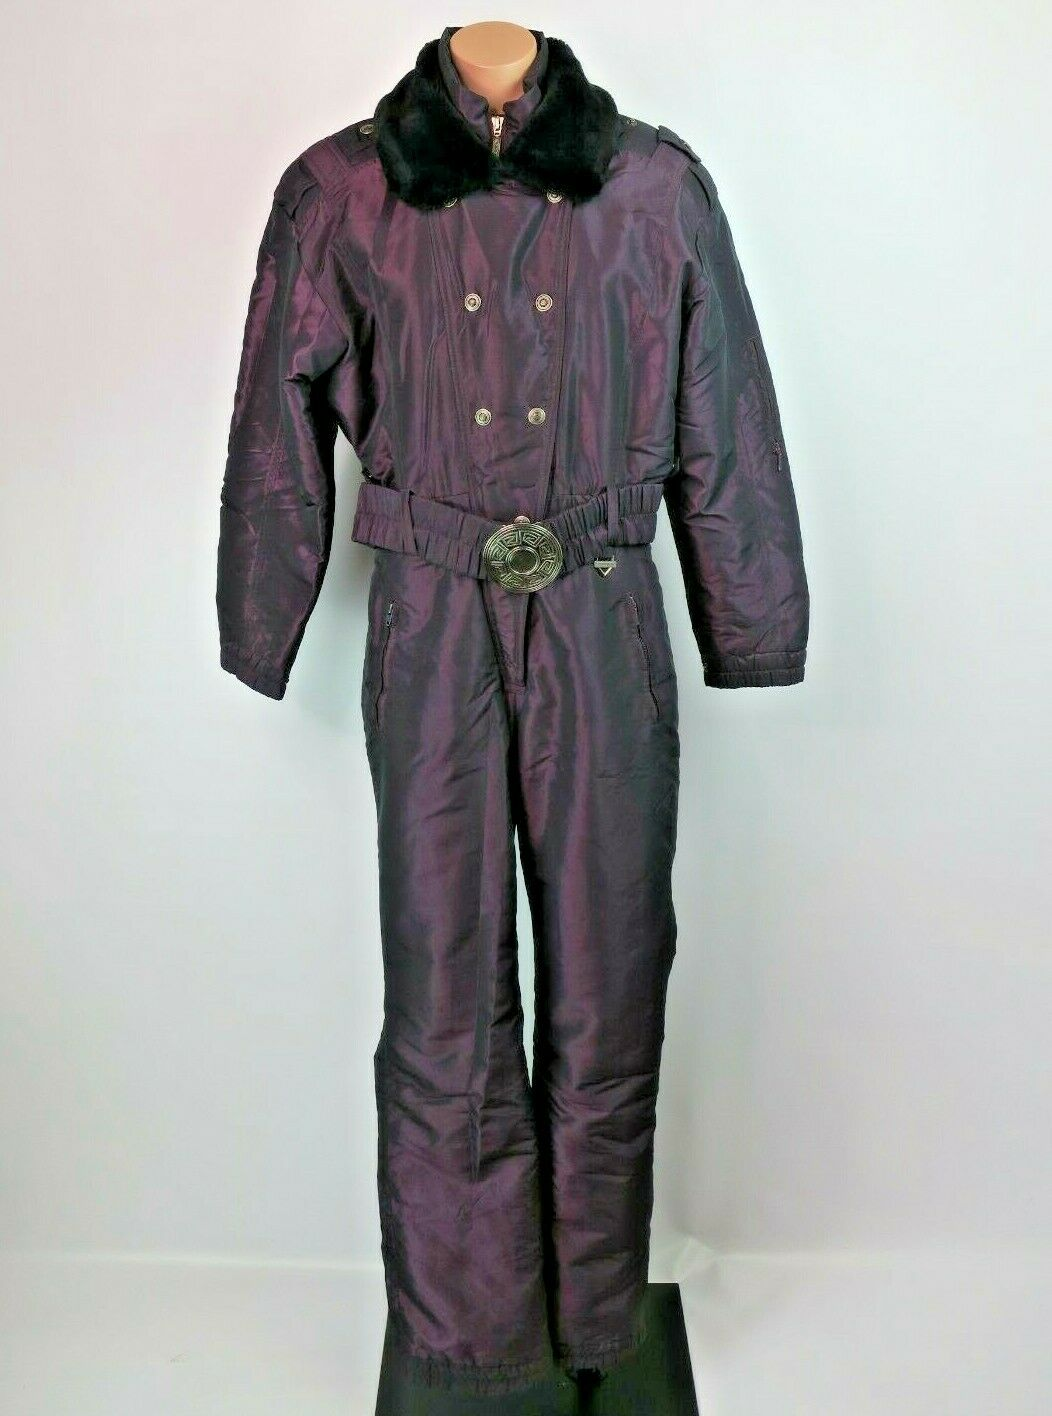 VTG 80s Fera Purple Iridescent Fur Collar One Piece Ski Snow Suit Womens 8